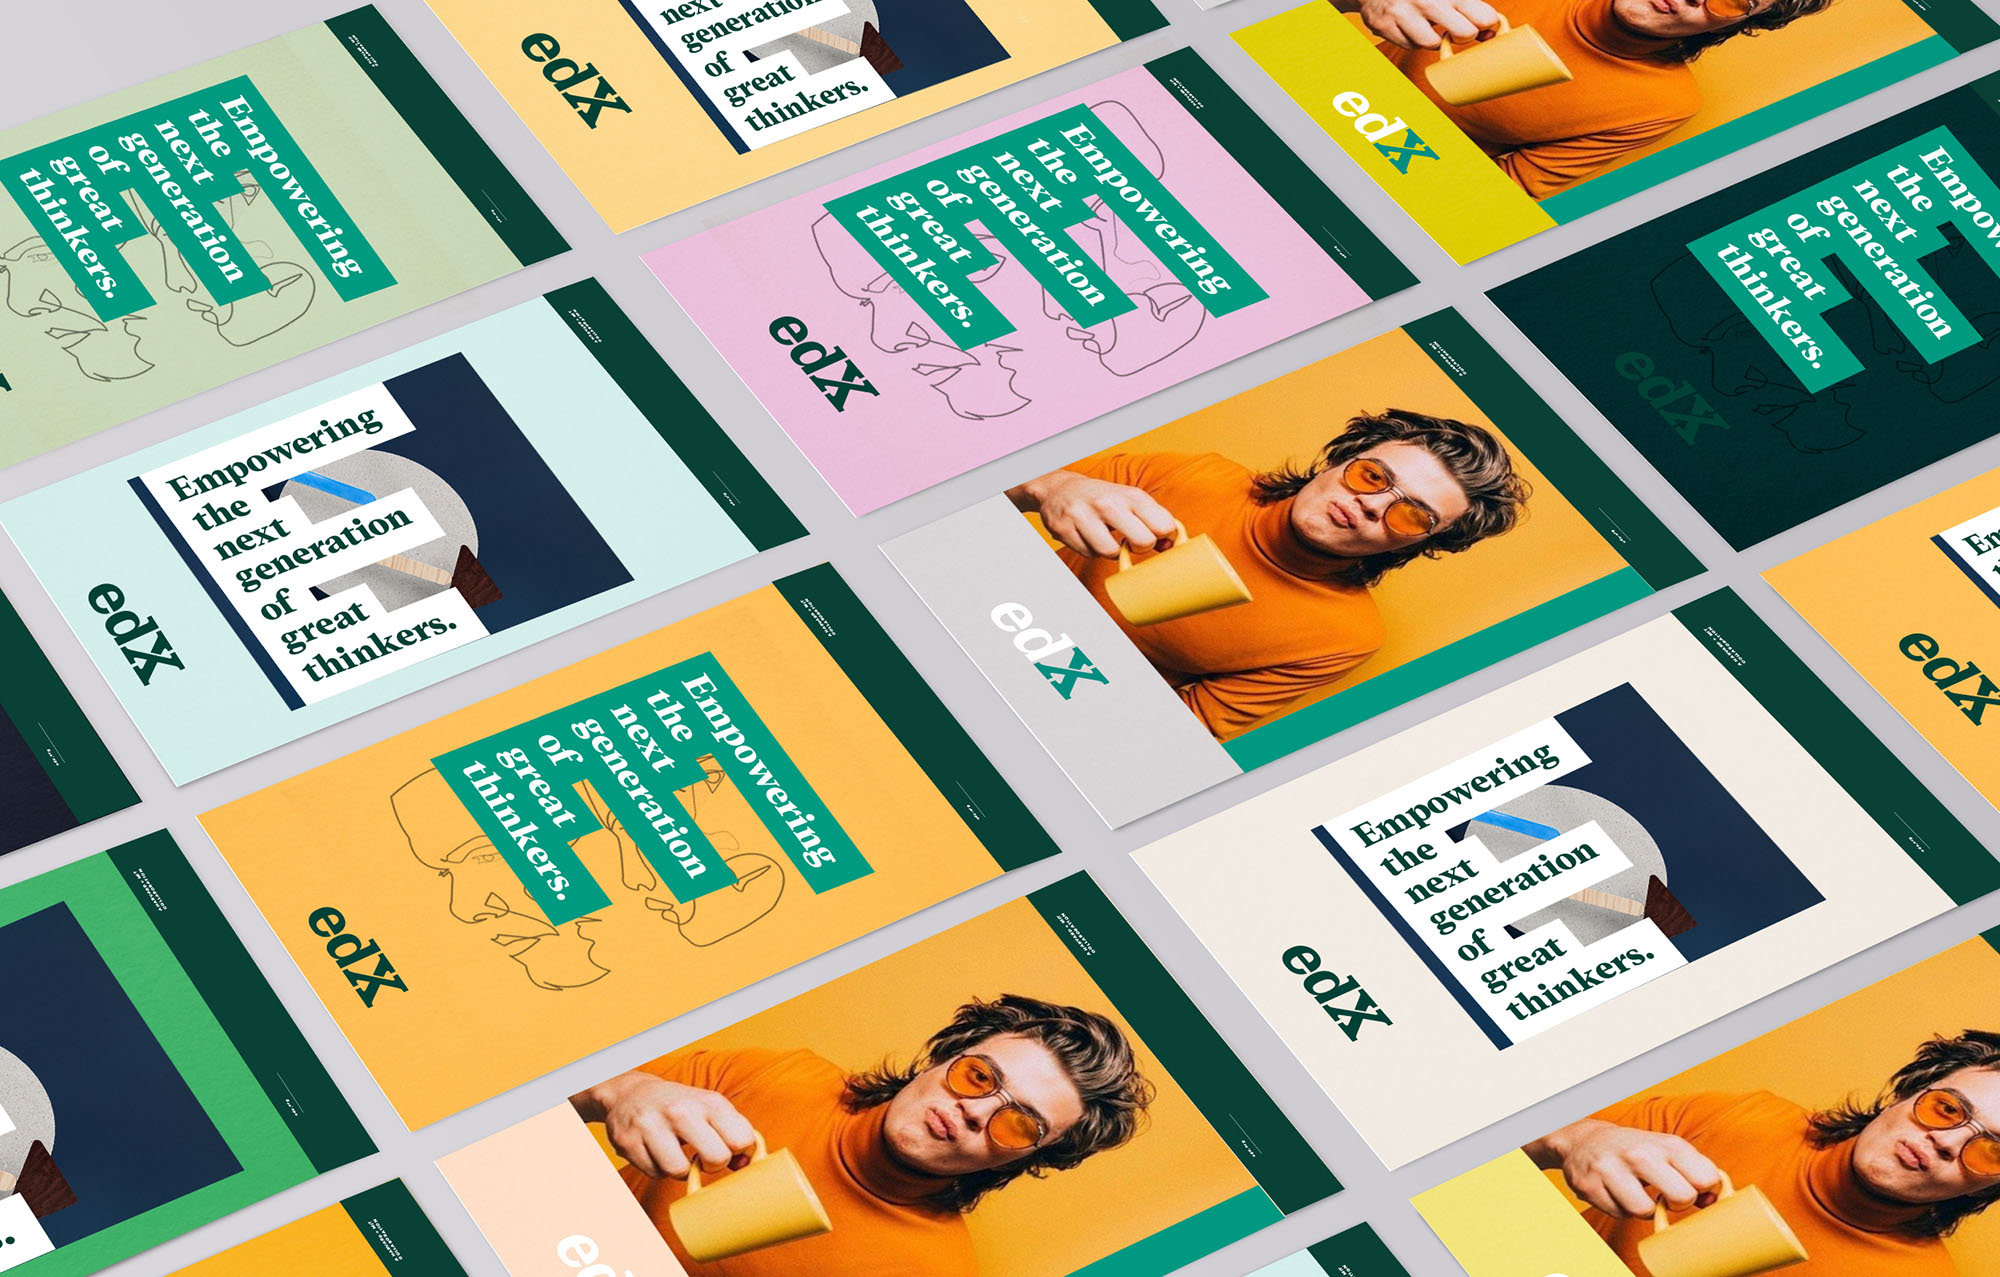 New identity and brand collateral